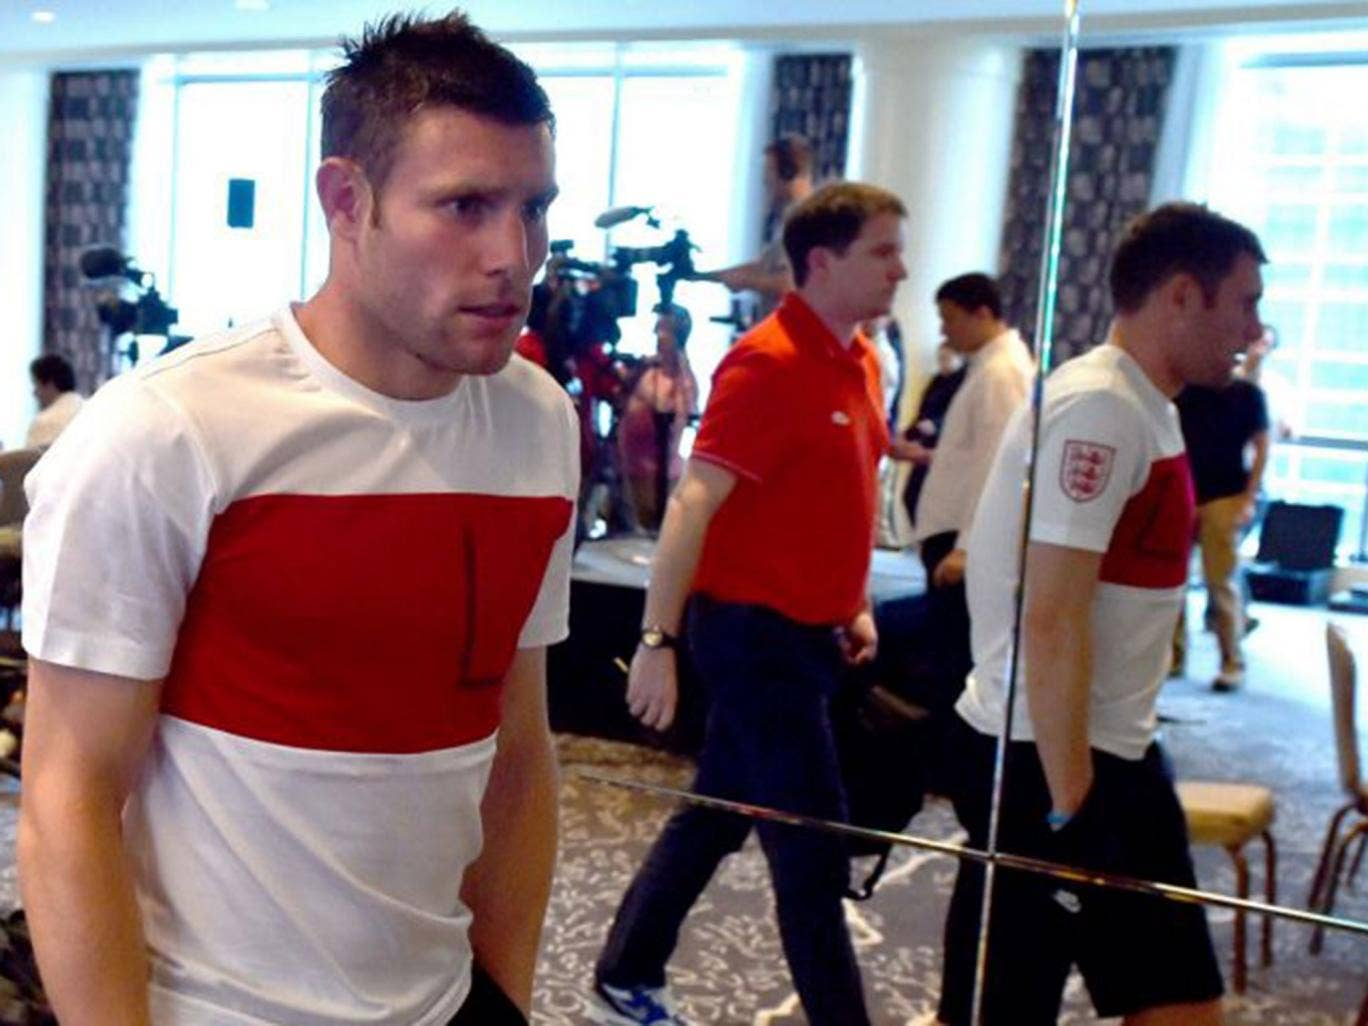 Contrary to Twitter, James Milner does not shop at Asda